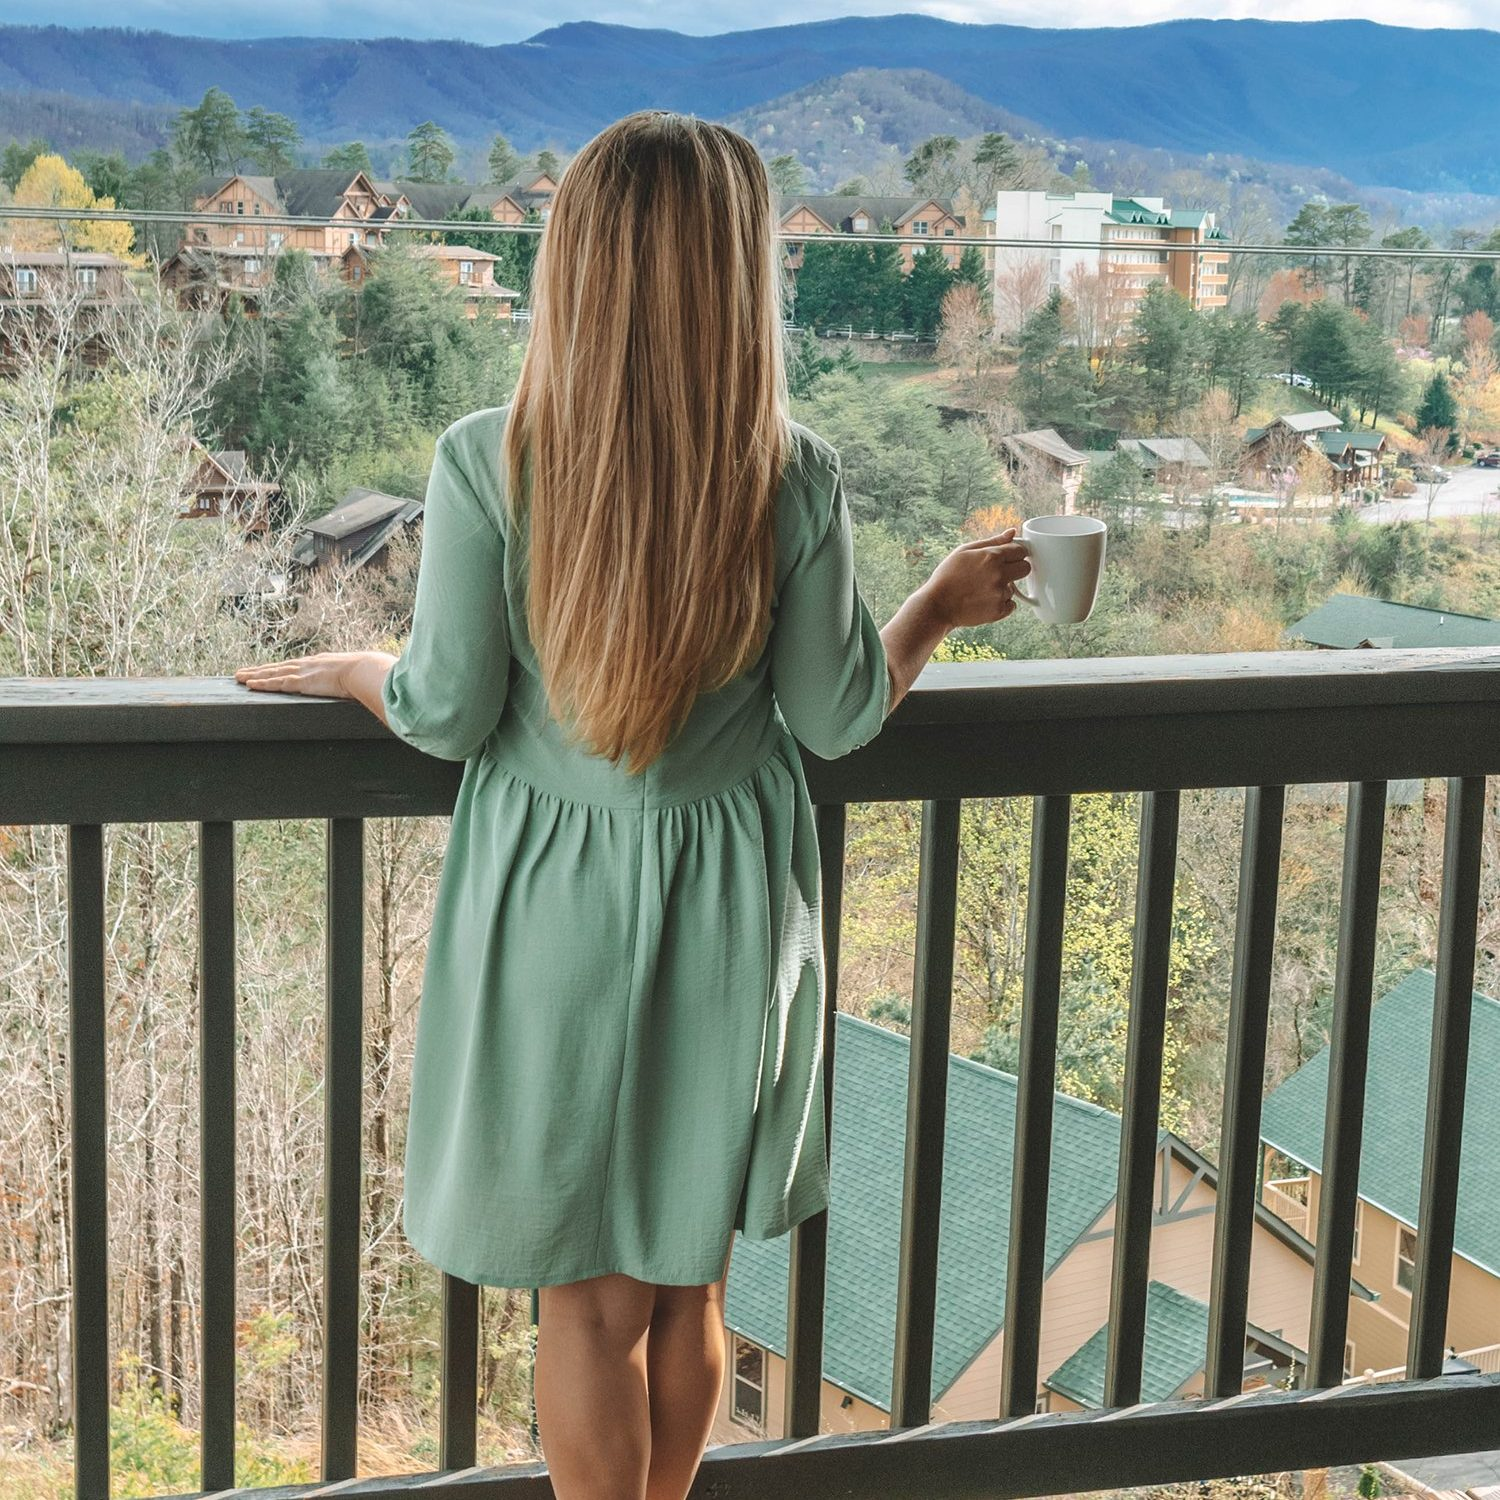 Taylor-Yourcation-Awaits-Pigeon-Forge5